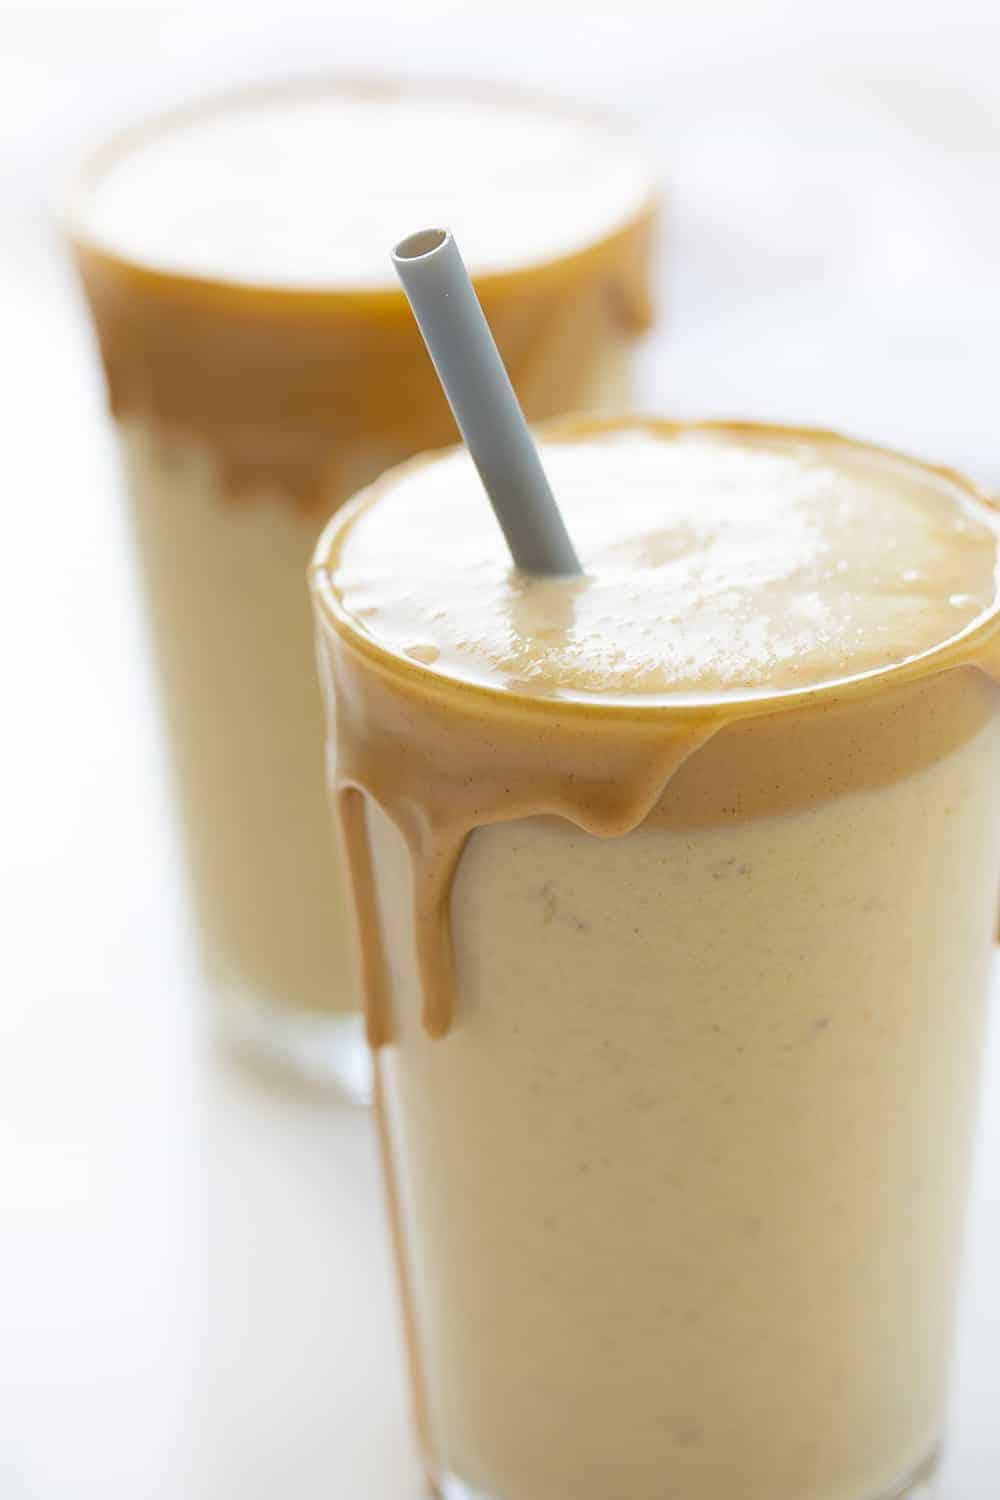 Two Glasses of Peanut Butter Banana Smoothies with Grey Plastic Straw